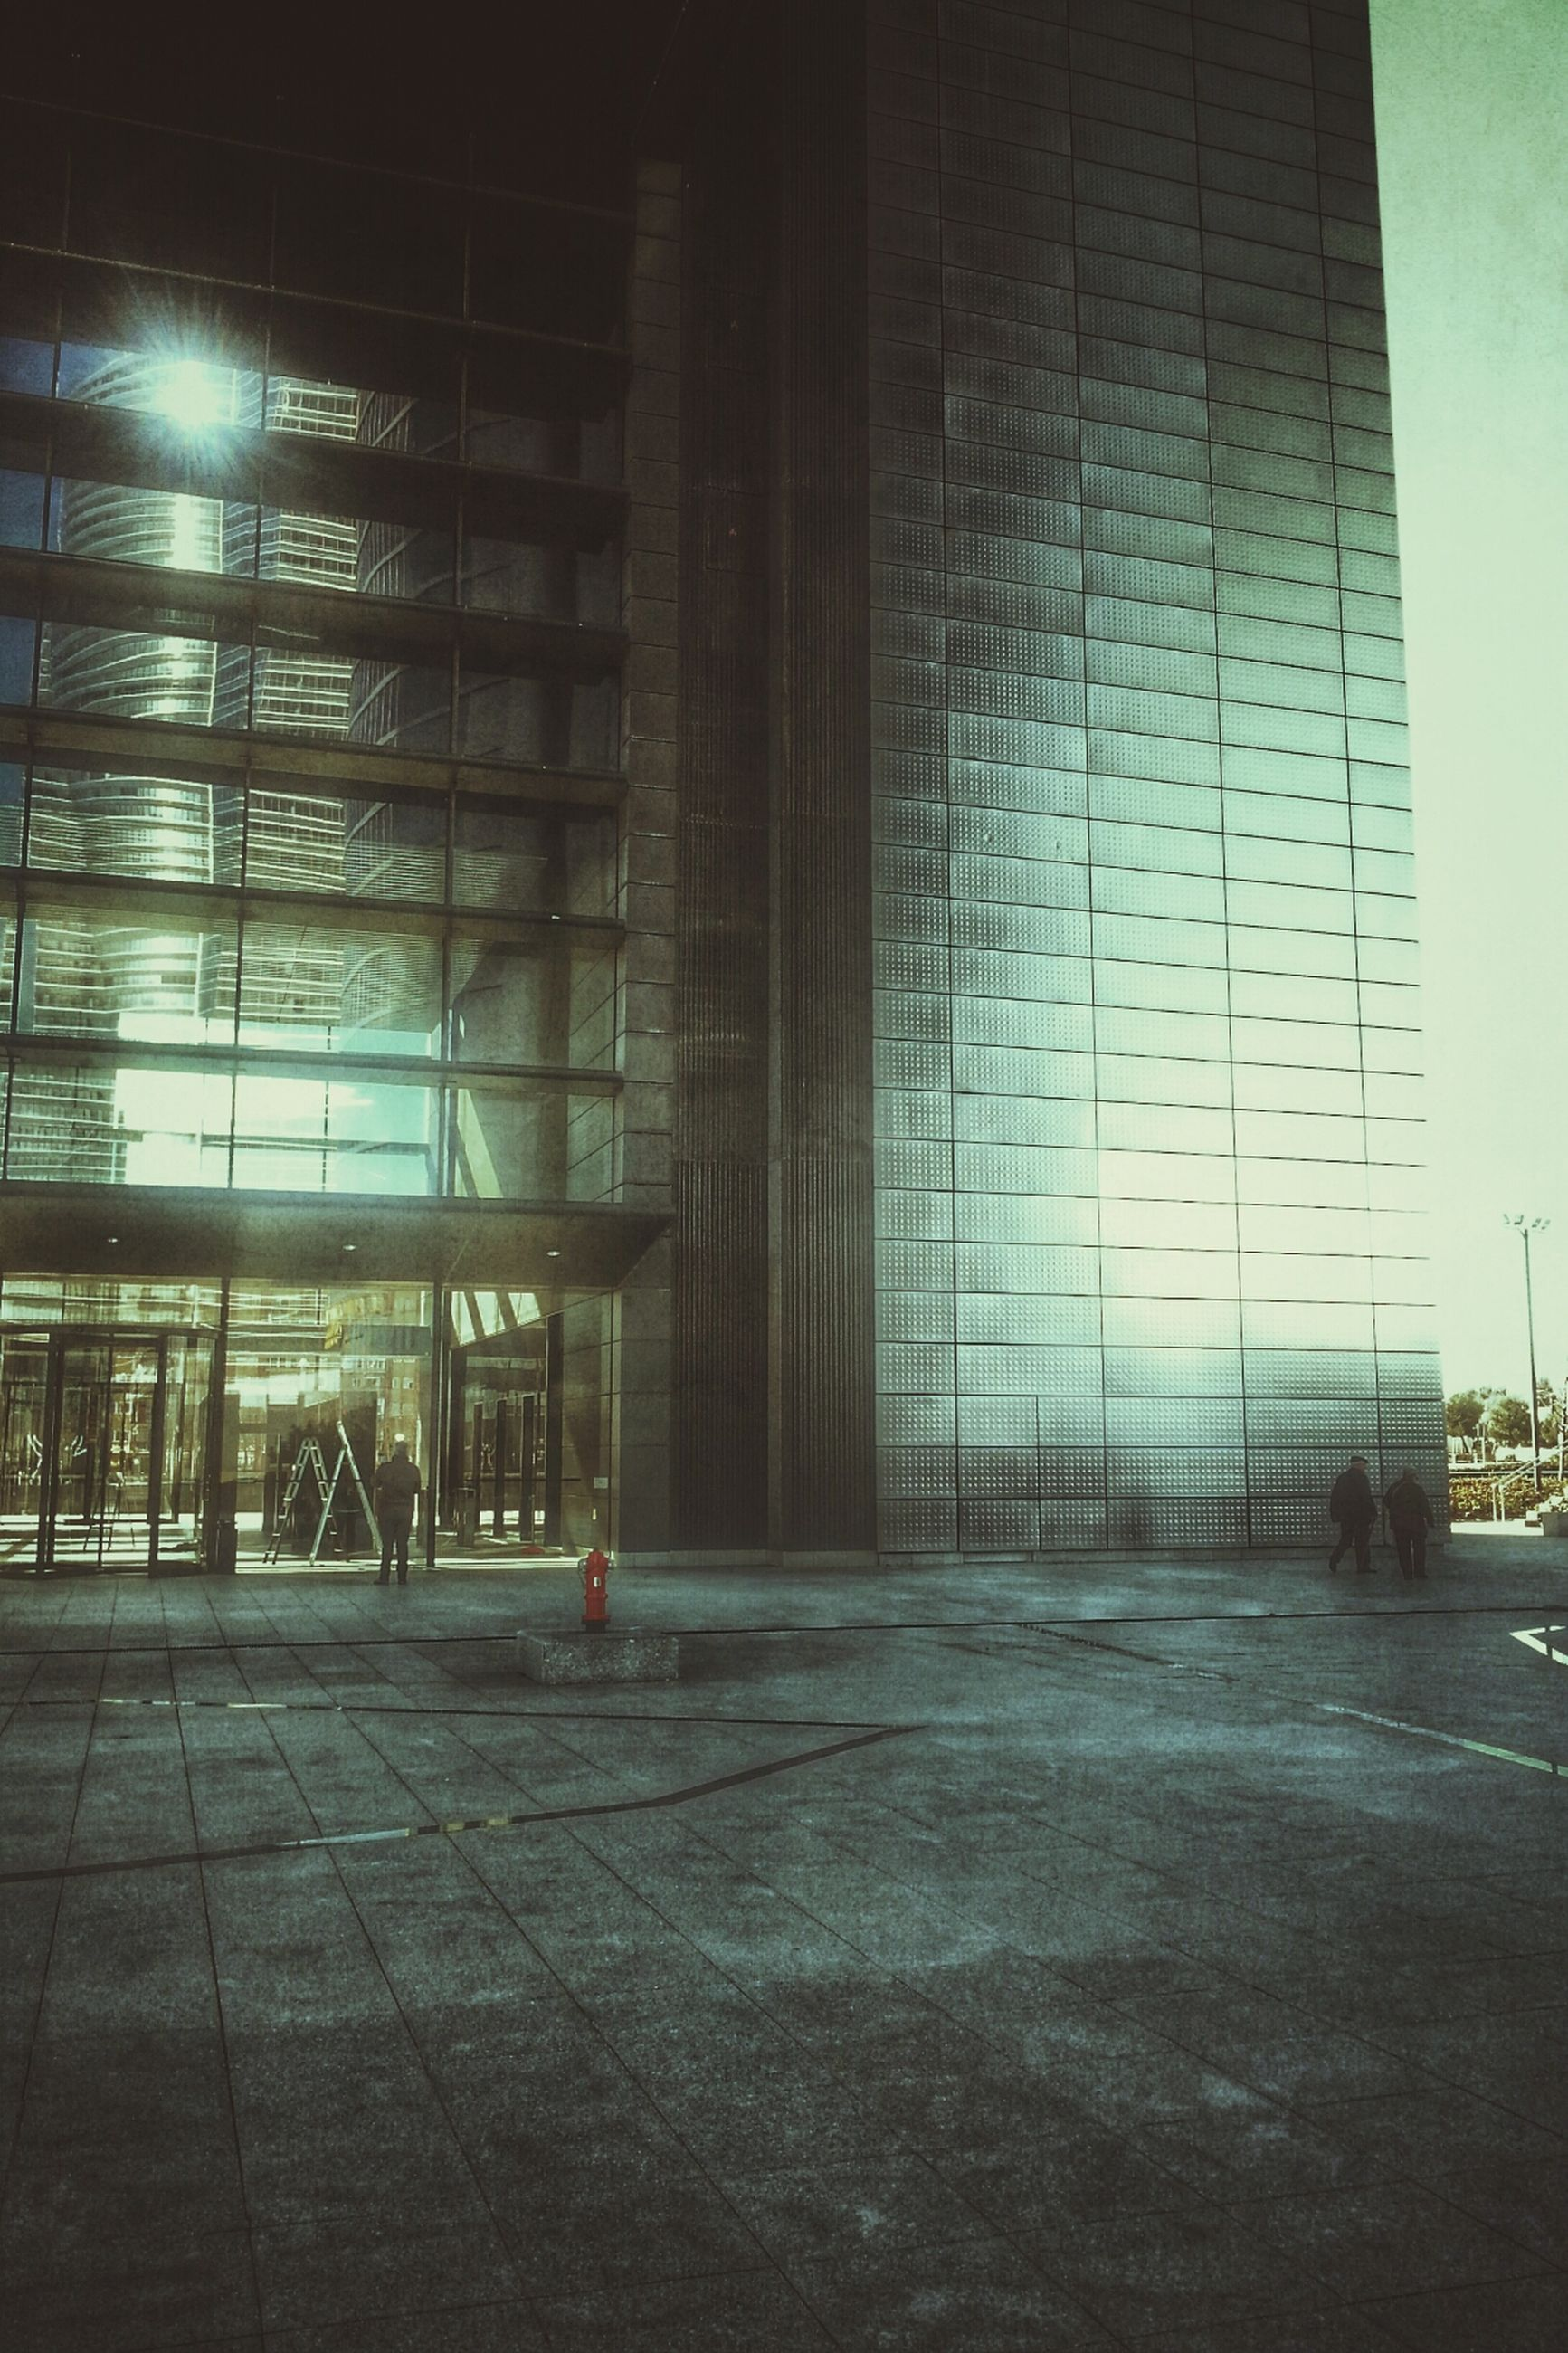 architecture, built structure, building exterior, building, city, window, glass - material, illuminated, street, modern, indoors, sunlight, night, no people, wall - building feature, reflection, empty, office building